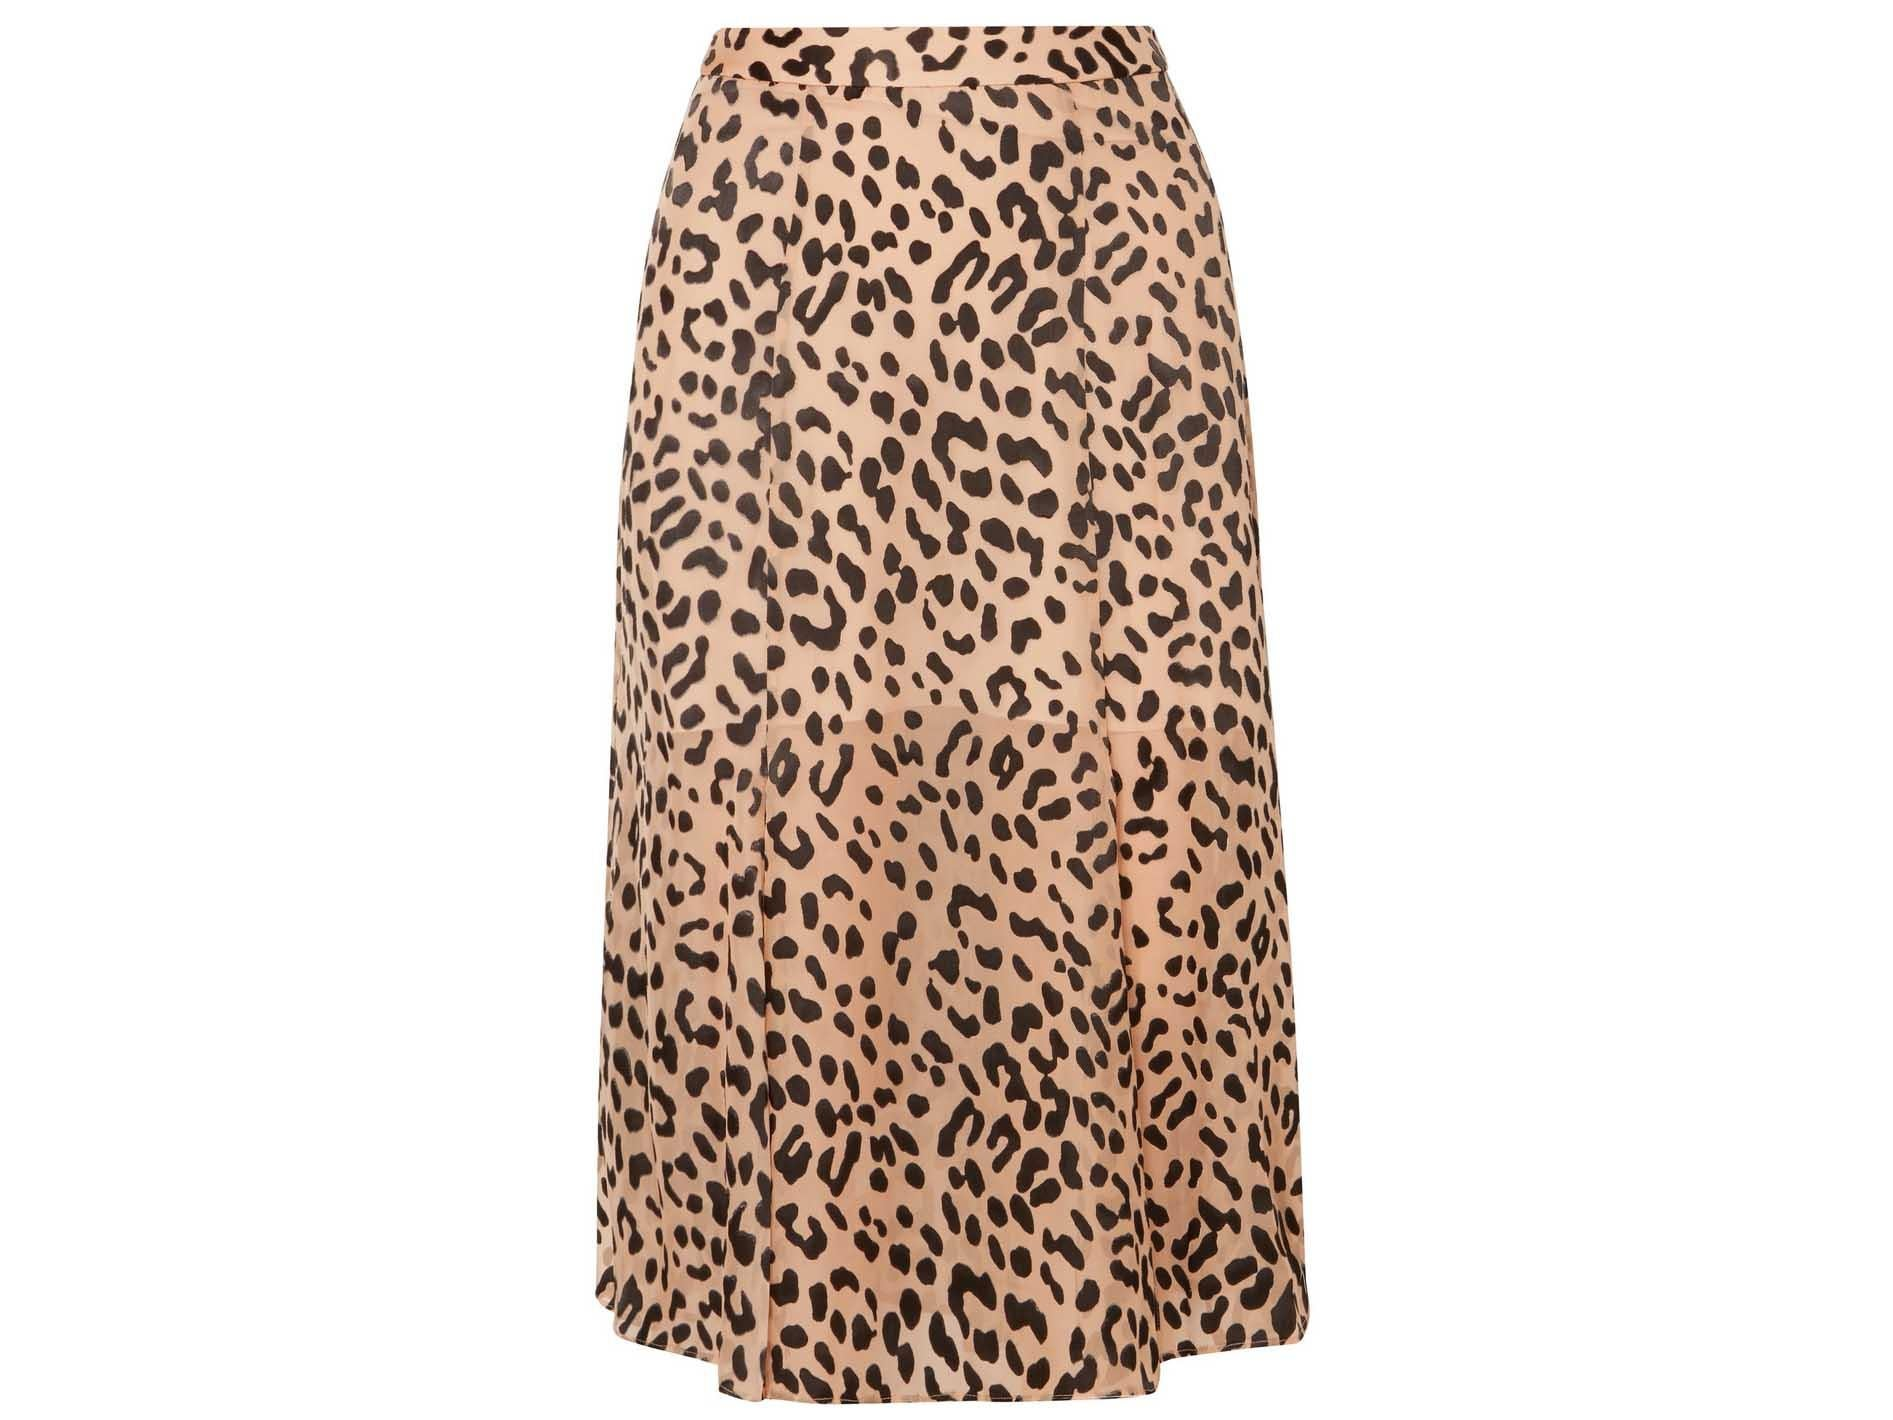 Discussion on this topic: We All Want a Leopard-Printed Skirt, So , we-all-want-a-leopard-printed-skirt-so/